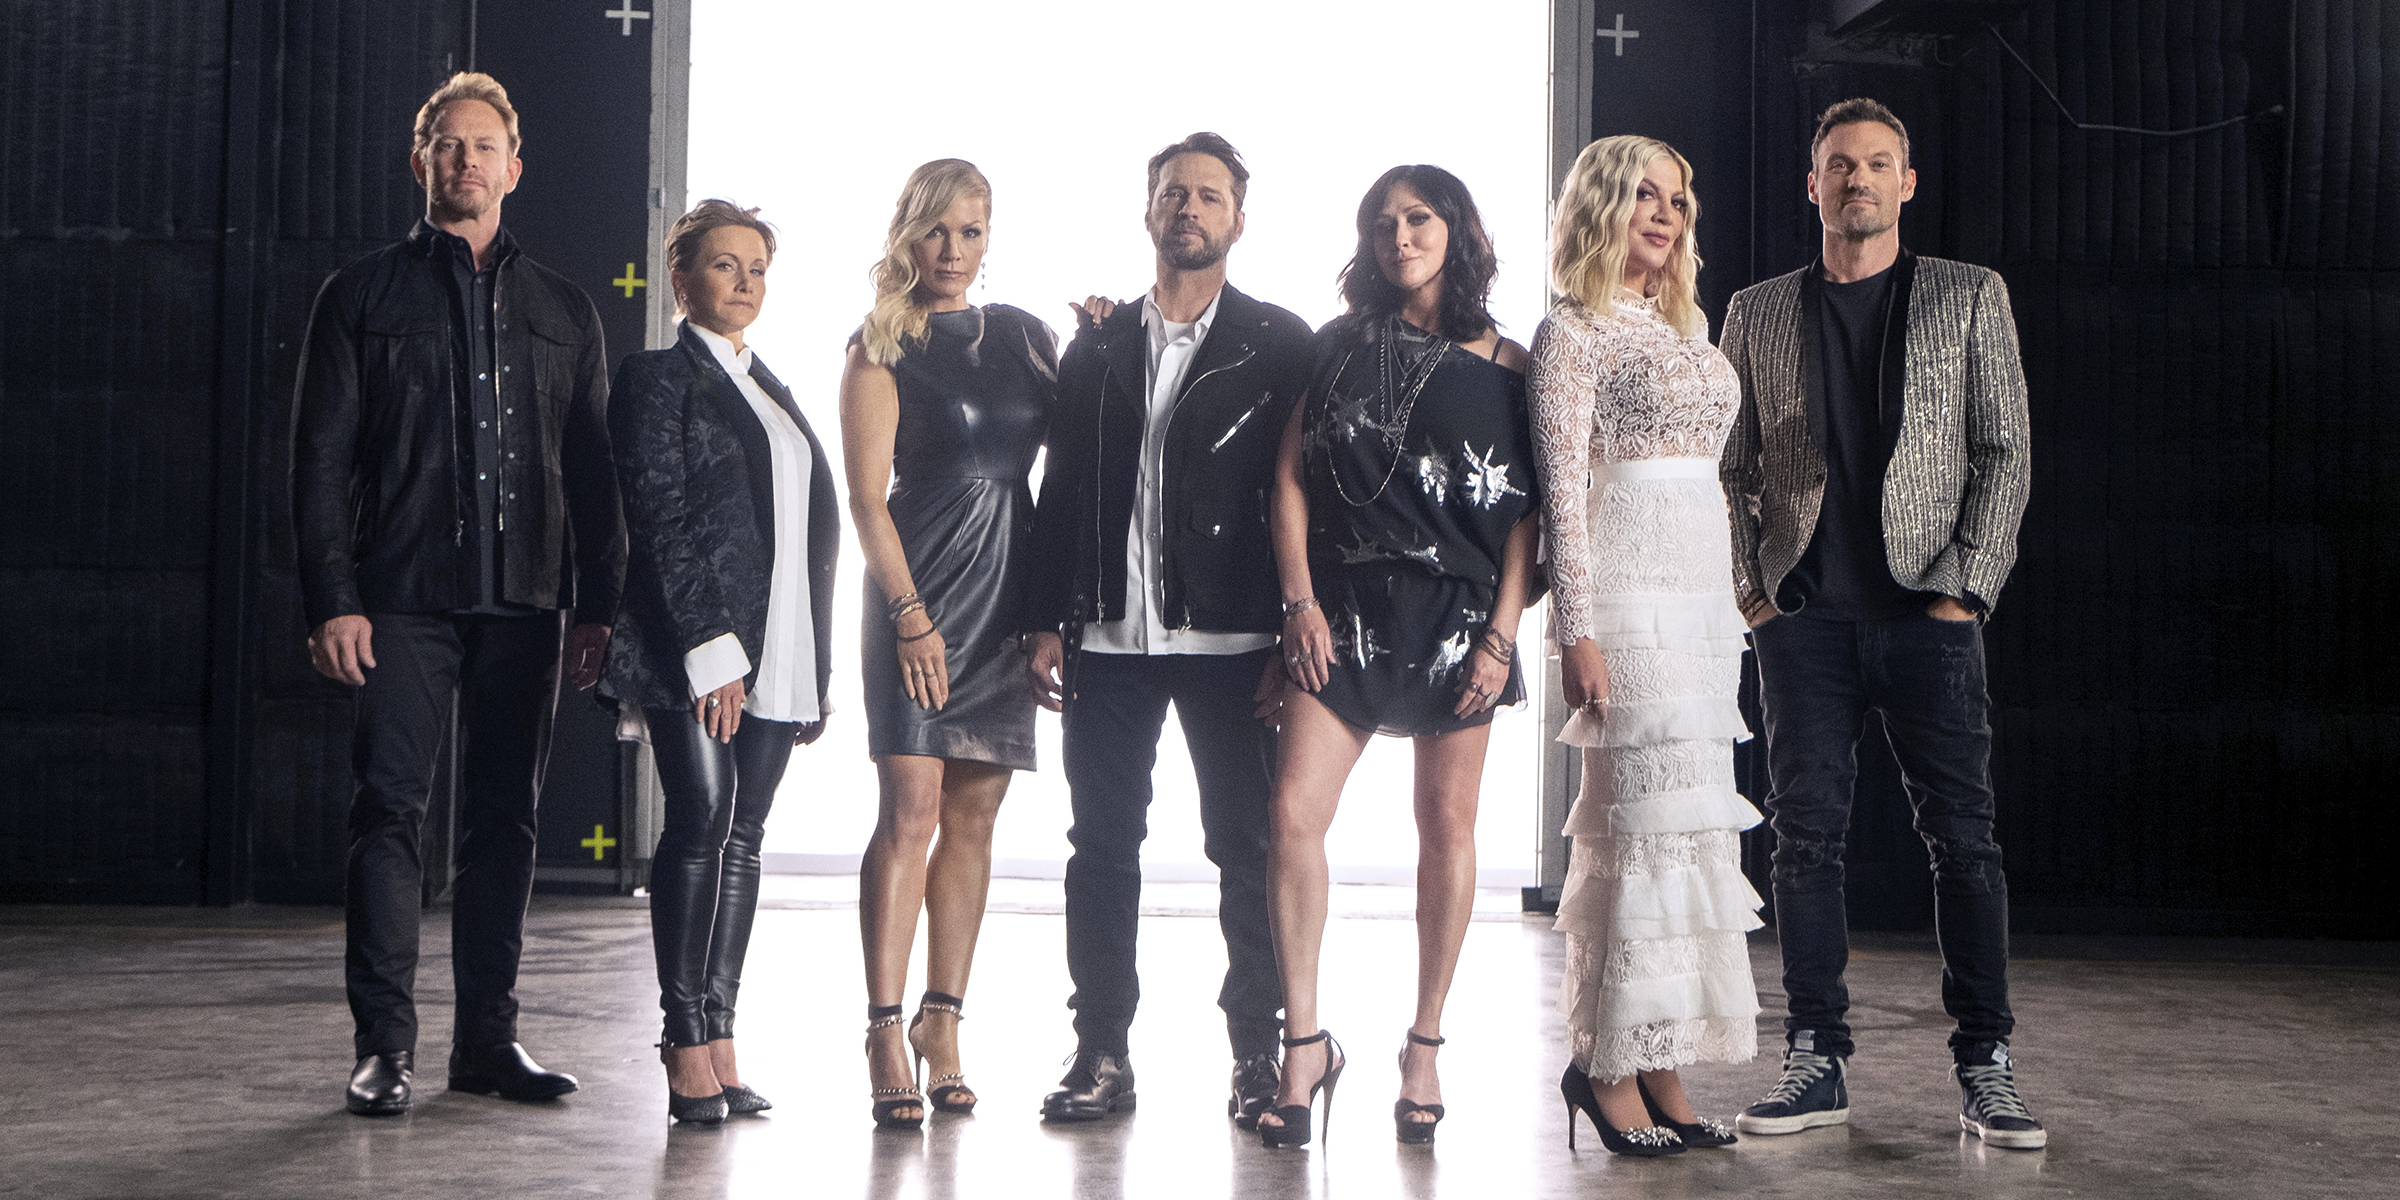 TV Gord's WHAT'S ON for the week of August 4th to 10th, 2019